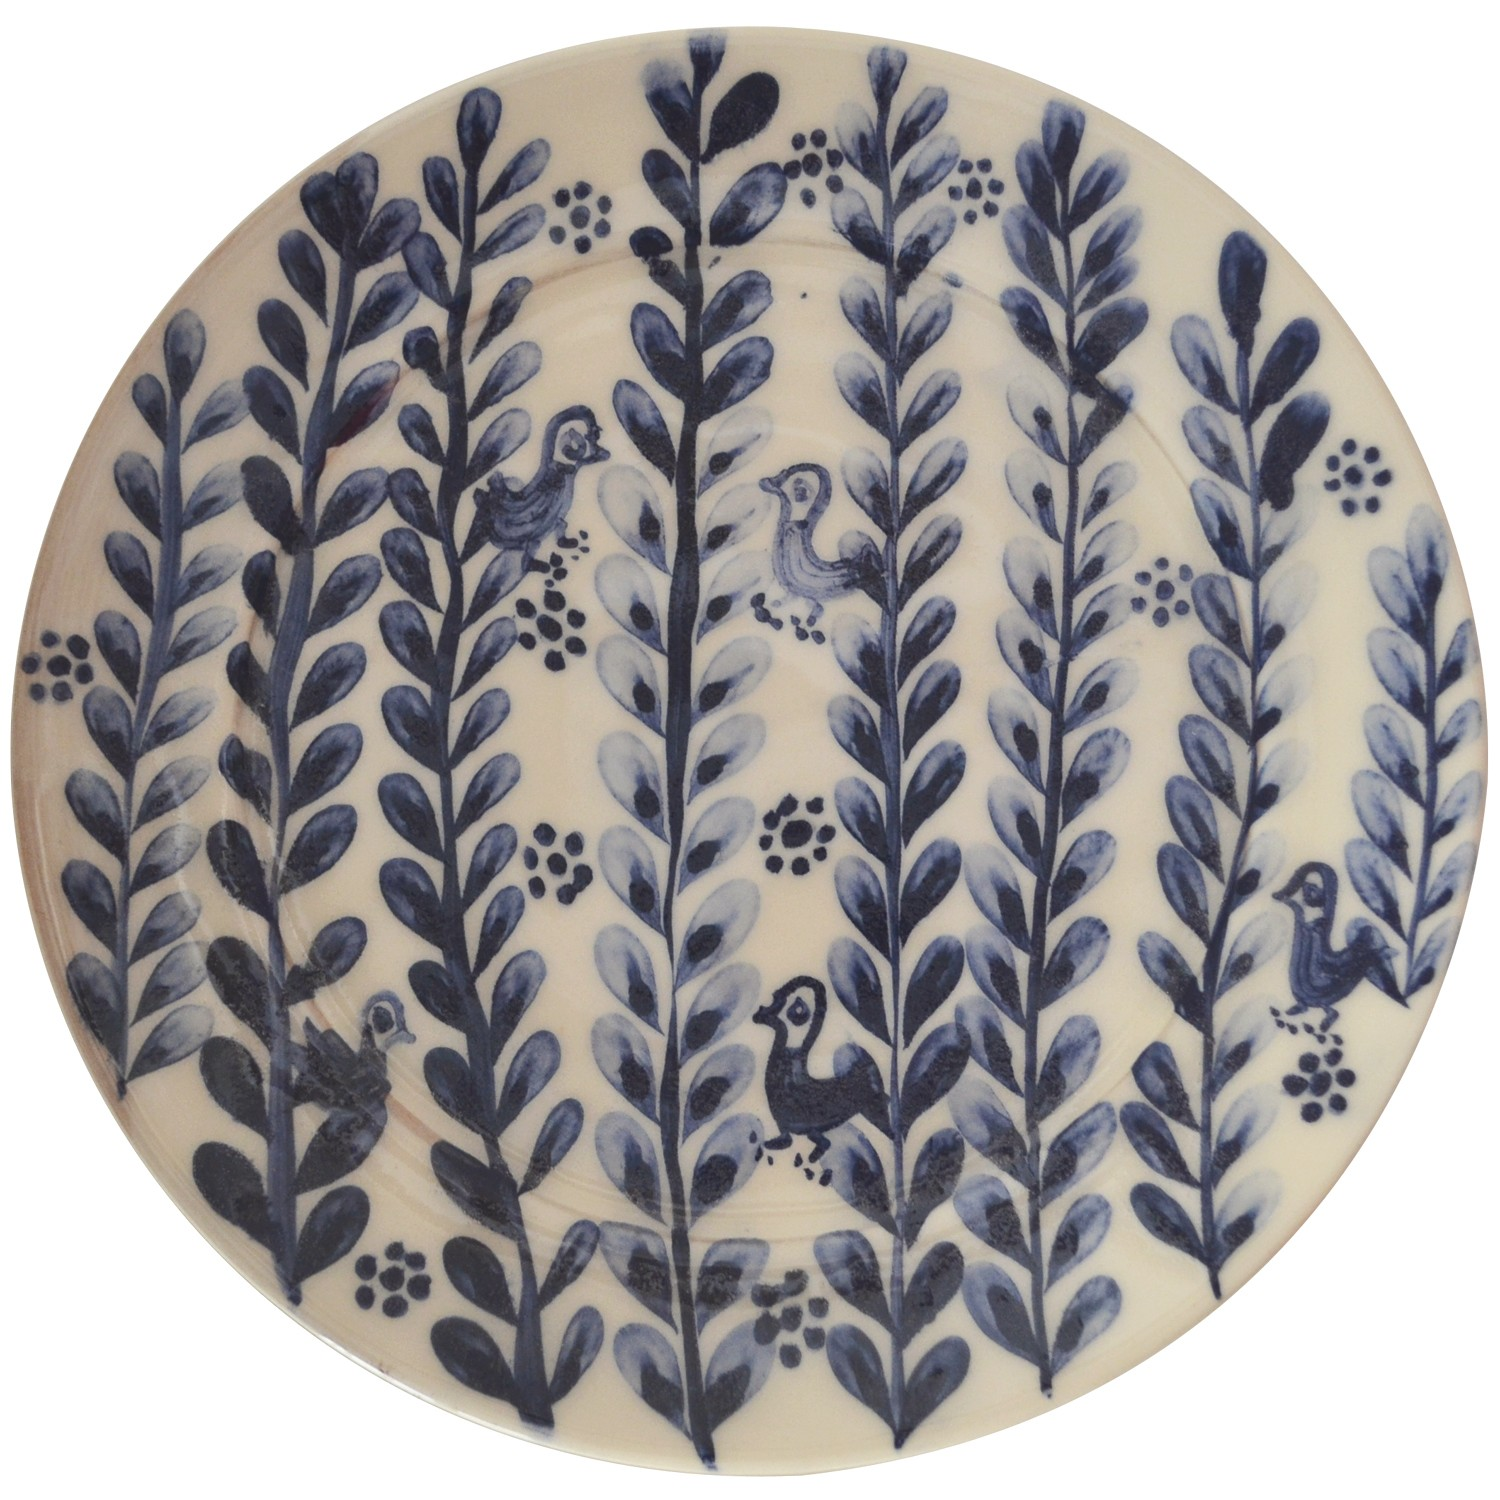 10011-Ears_Field_Hand_crafted_Ceramic_Plate-1